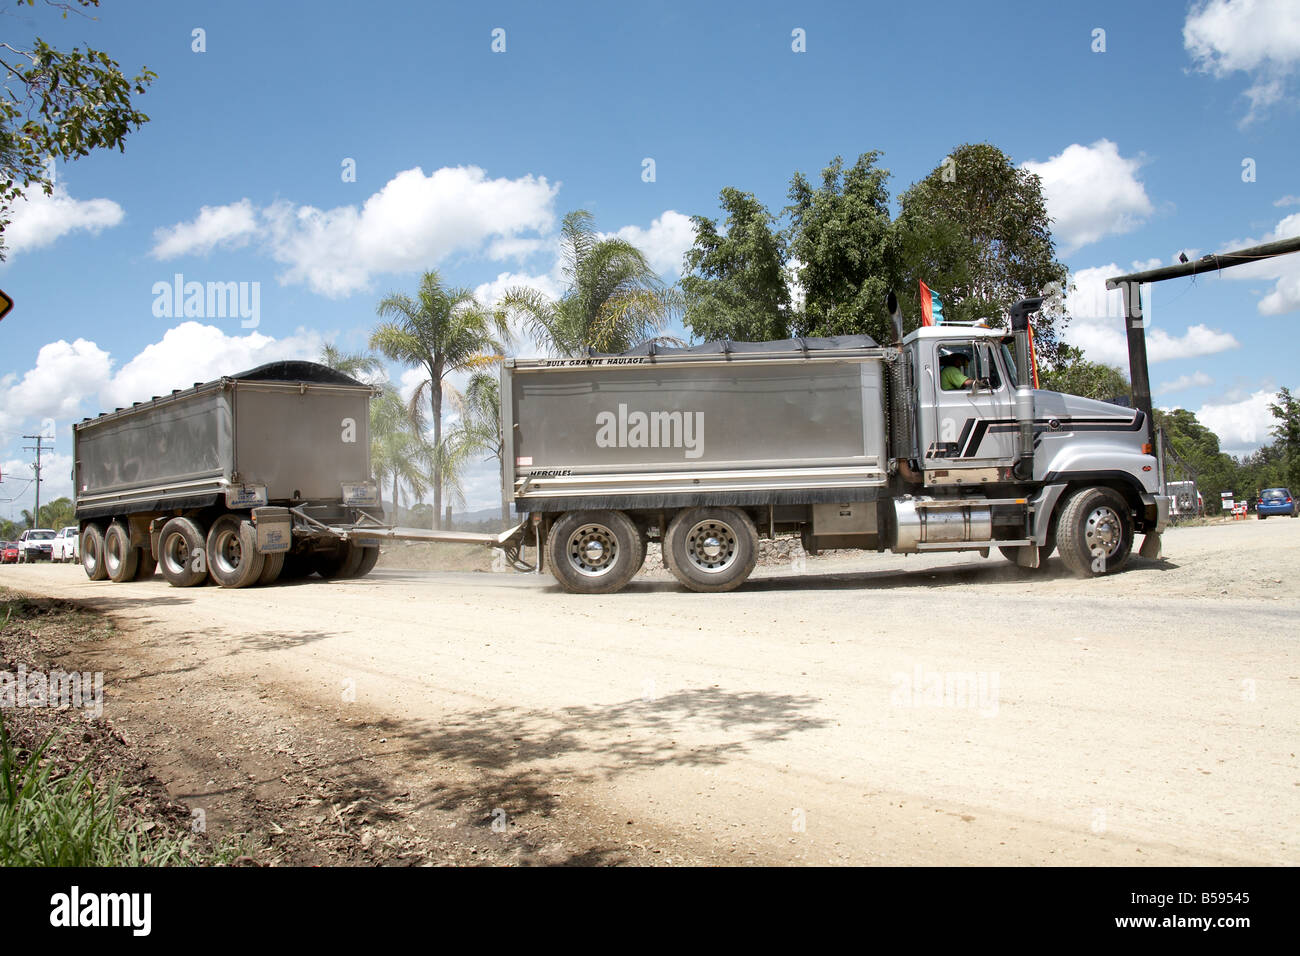 Large road train lorry or truck and trailer in Queensland QLD Australia - Stock Image